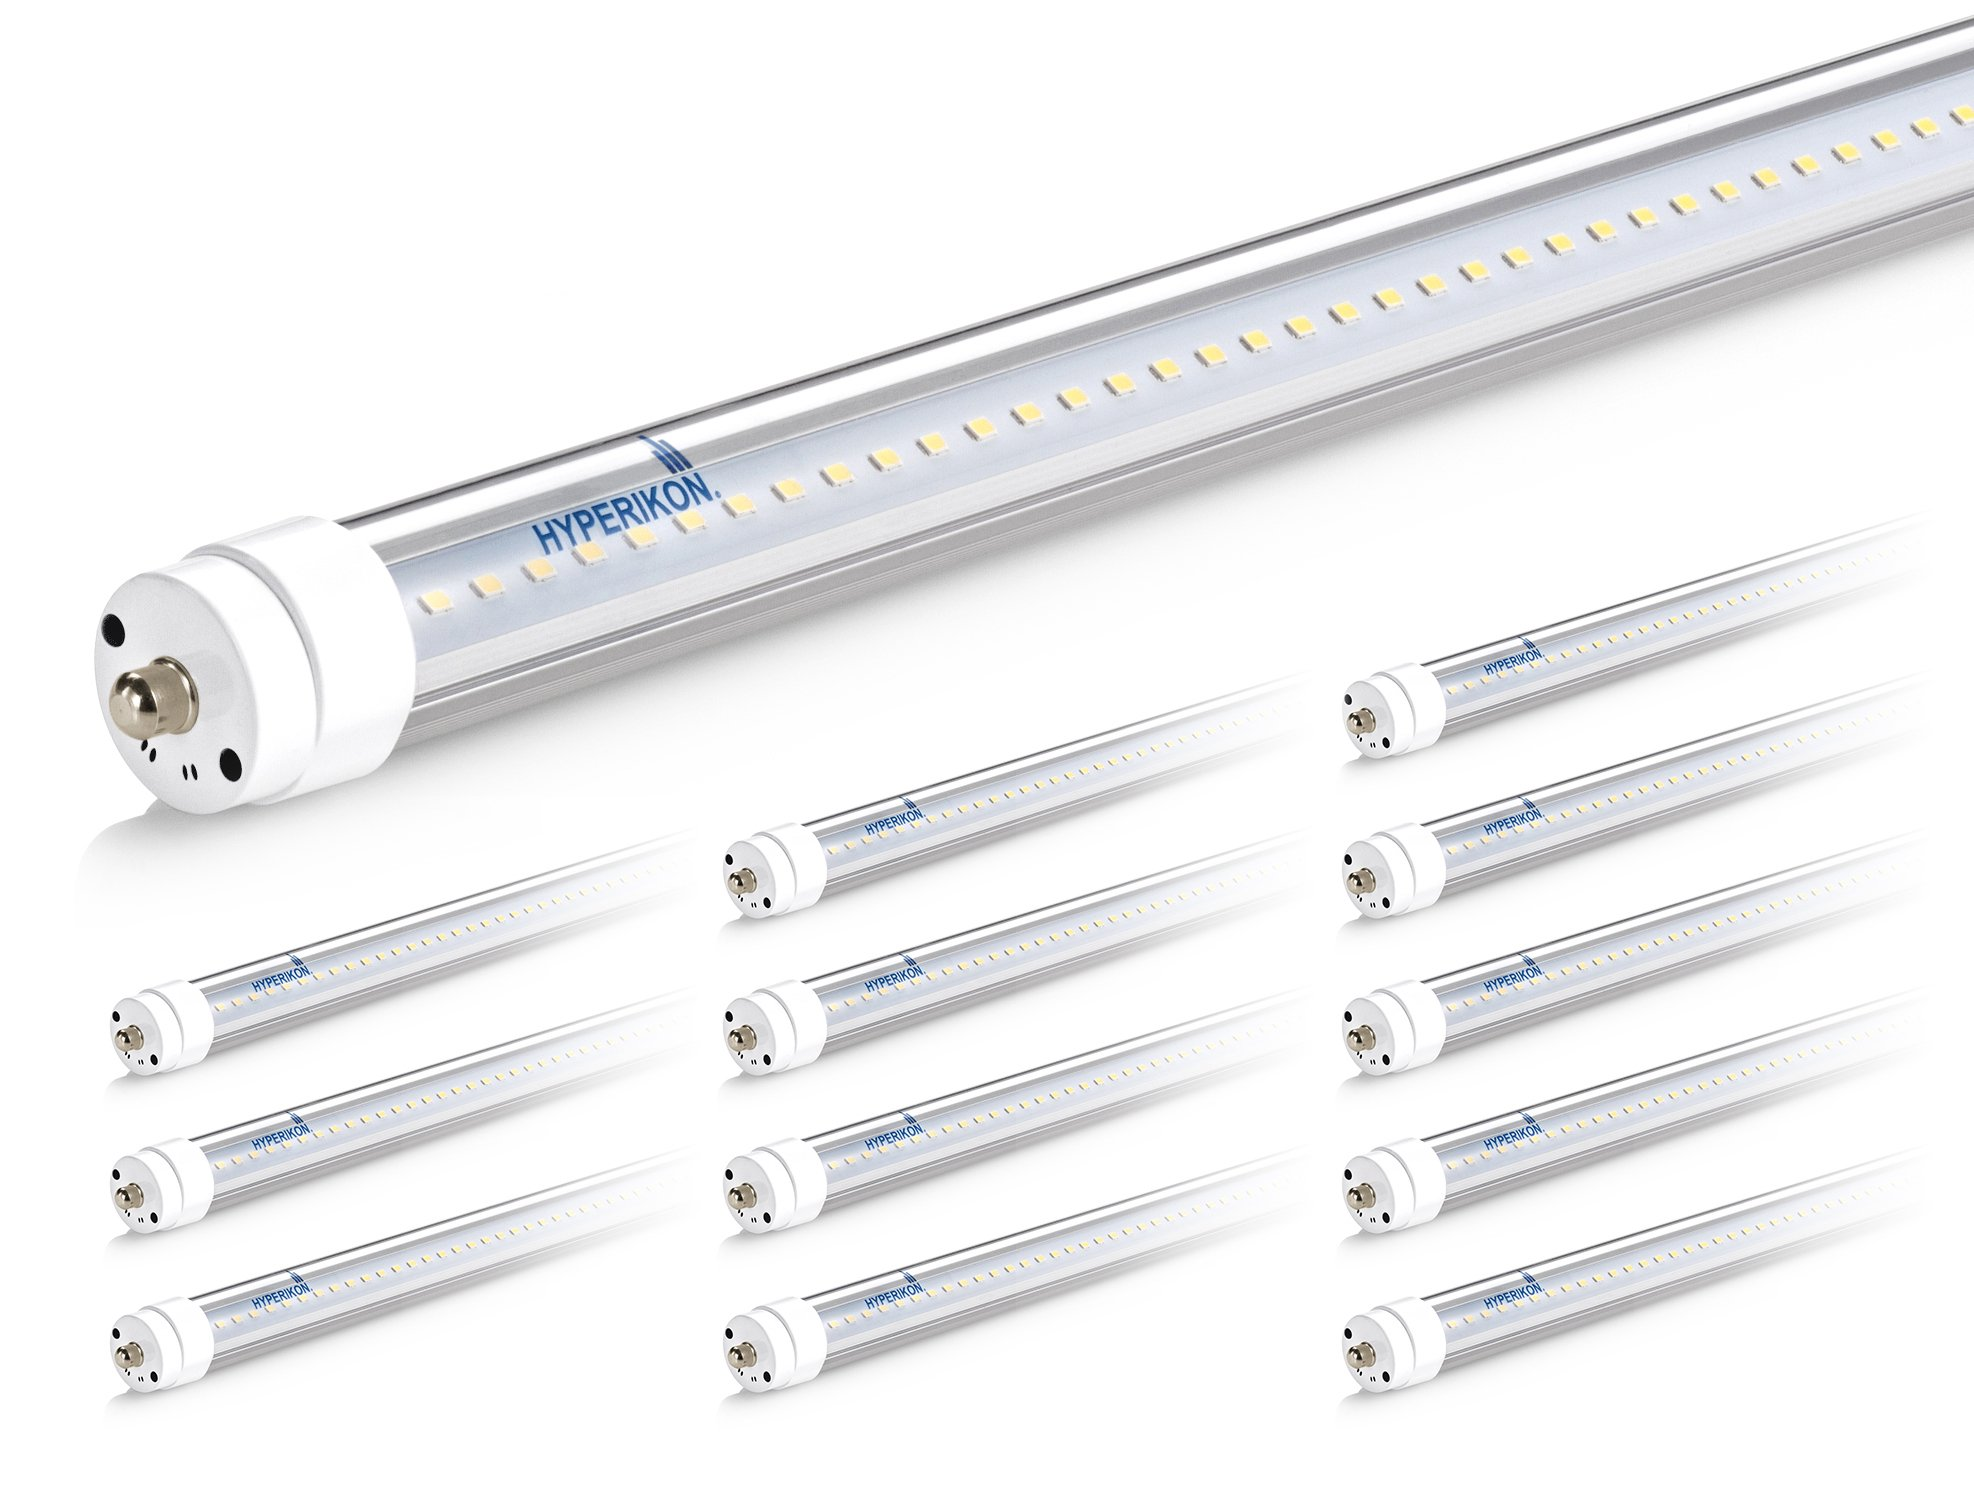 Hyperikon T8 T10 T12 8ft LED f96t12 Tube Light 36W (75W Equiv.) Dual-End Powered, Ballast Bypass, Shatterproof, Fluorescent Replacement, 6000k, Clear, 4400 Lm, Workshop, Warehouse, Garage - 12Pack